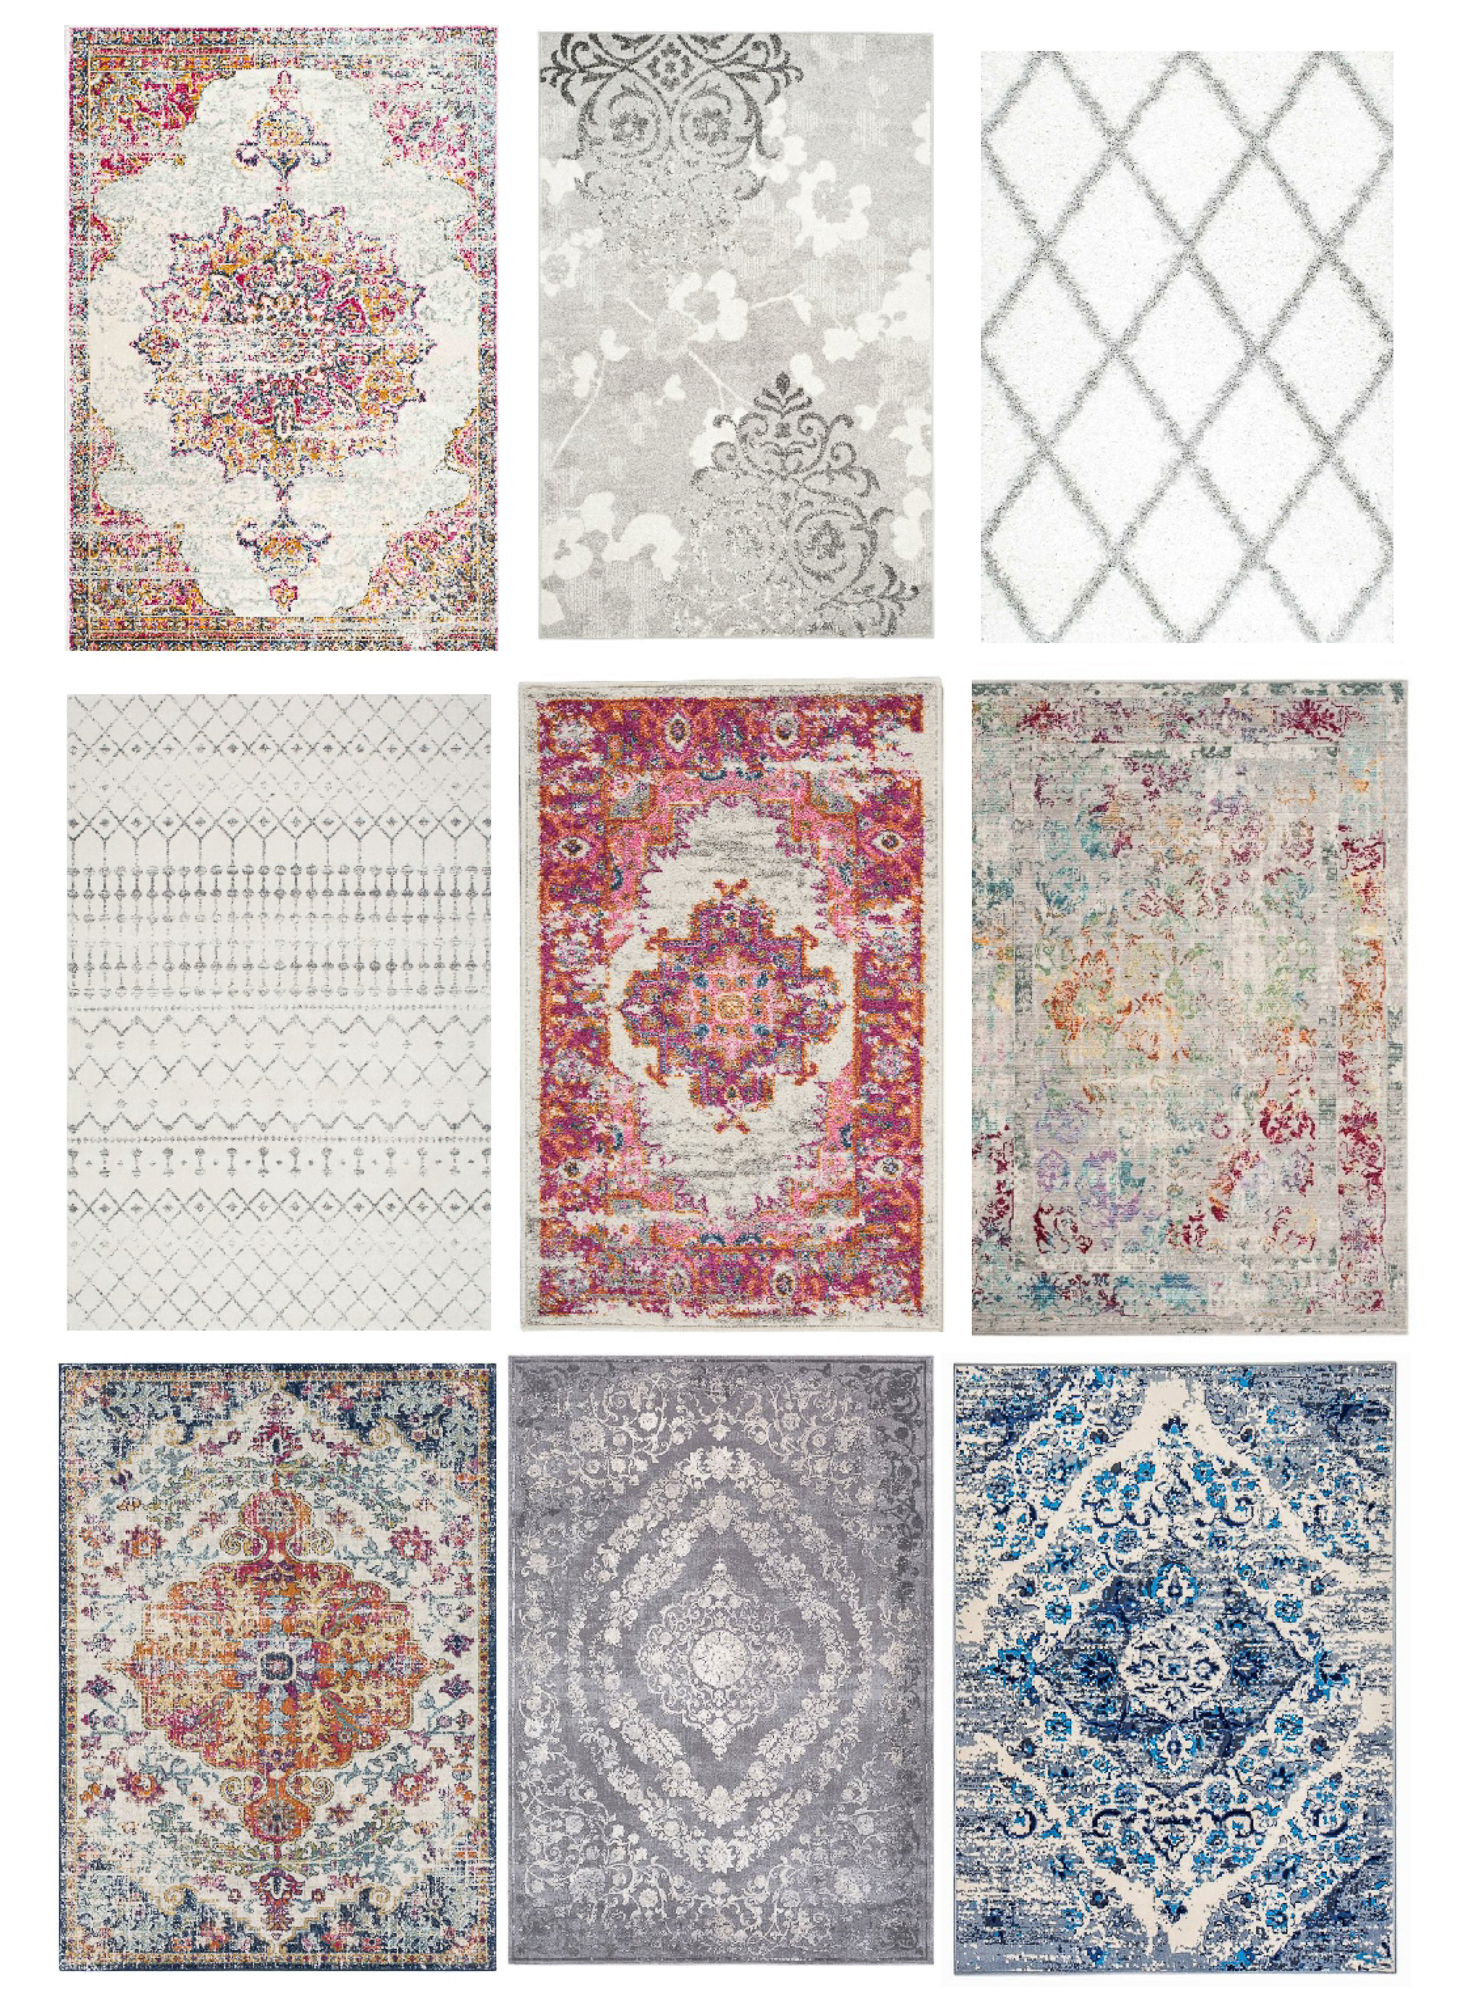 rugs this affordable modern with outdoor for cheap lowes area home stores black bedroom depot rug floral ideas fluffy room plush ru looks comfortable floor living